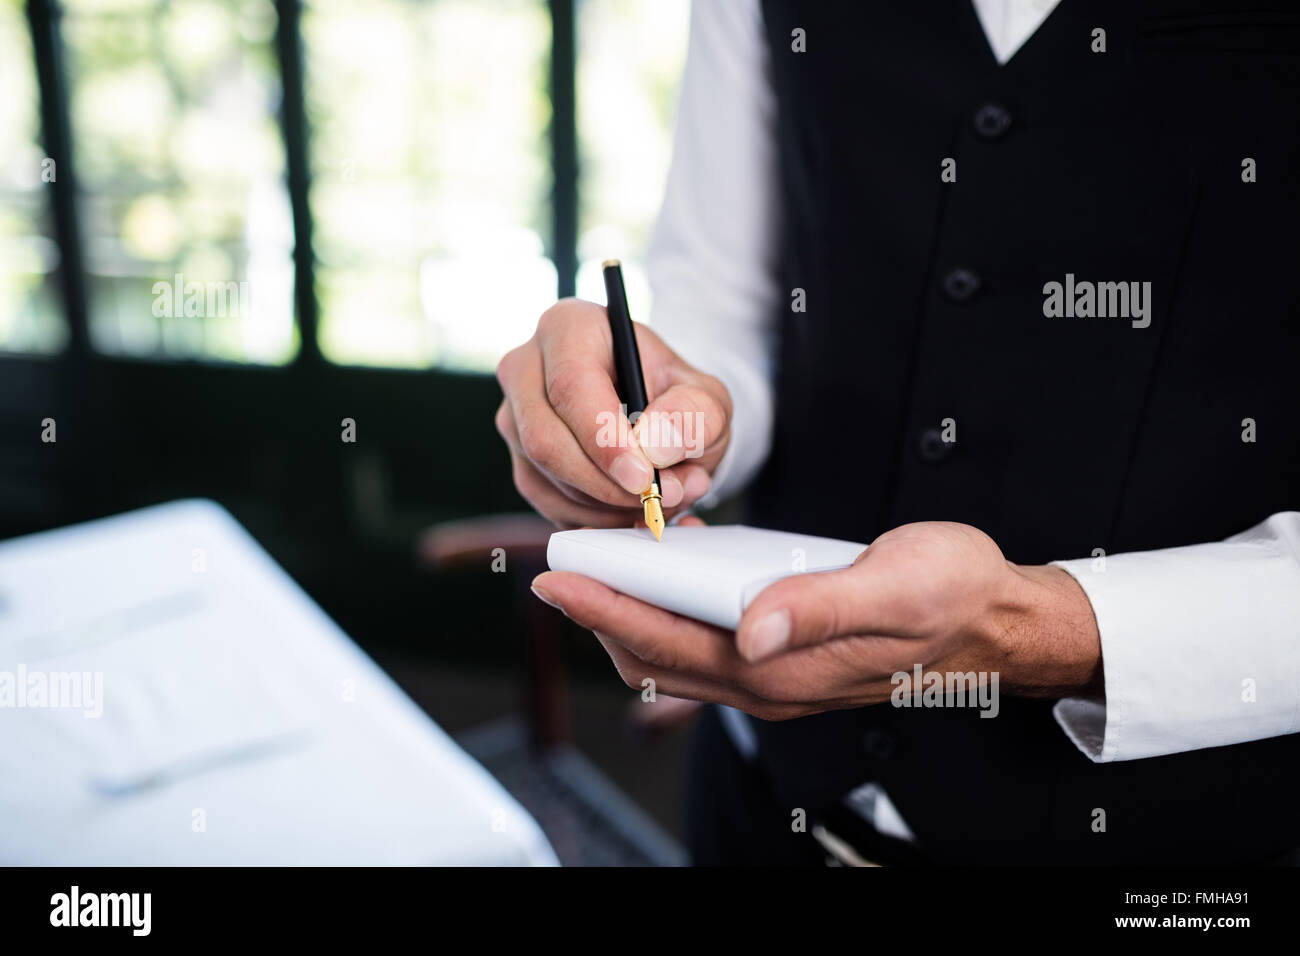 Close-up of waiter taking an order wearing a waistcoat - Stock Image